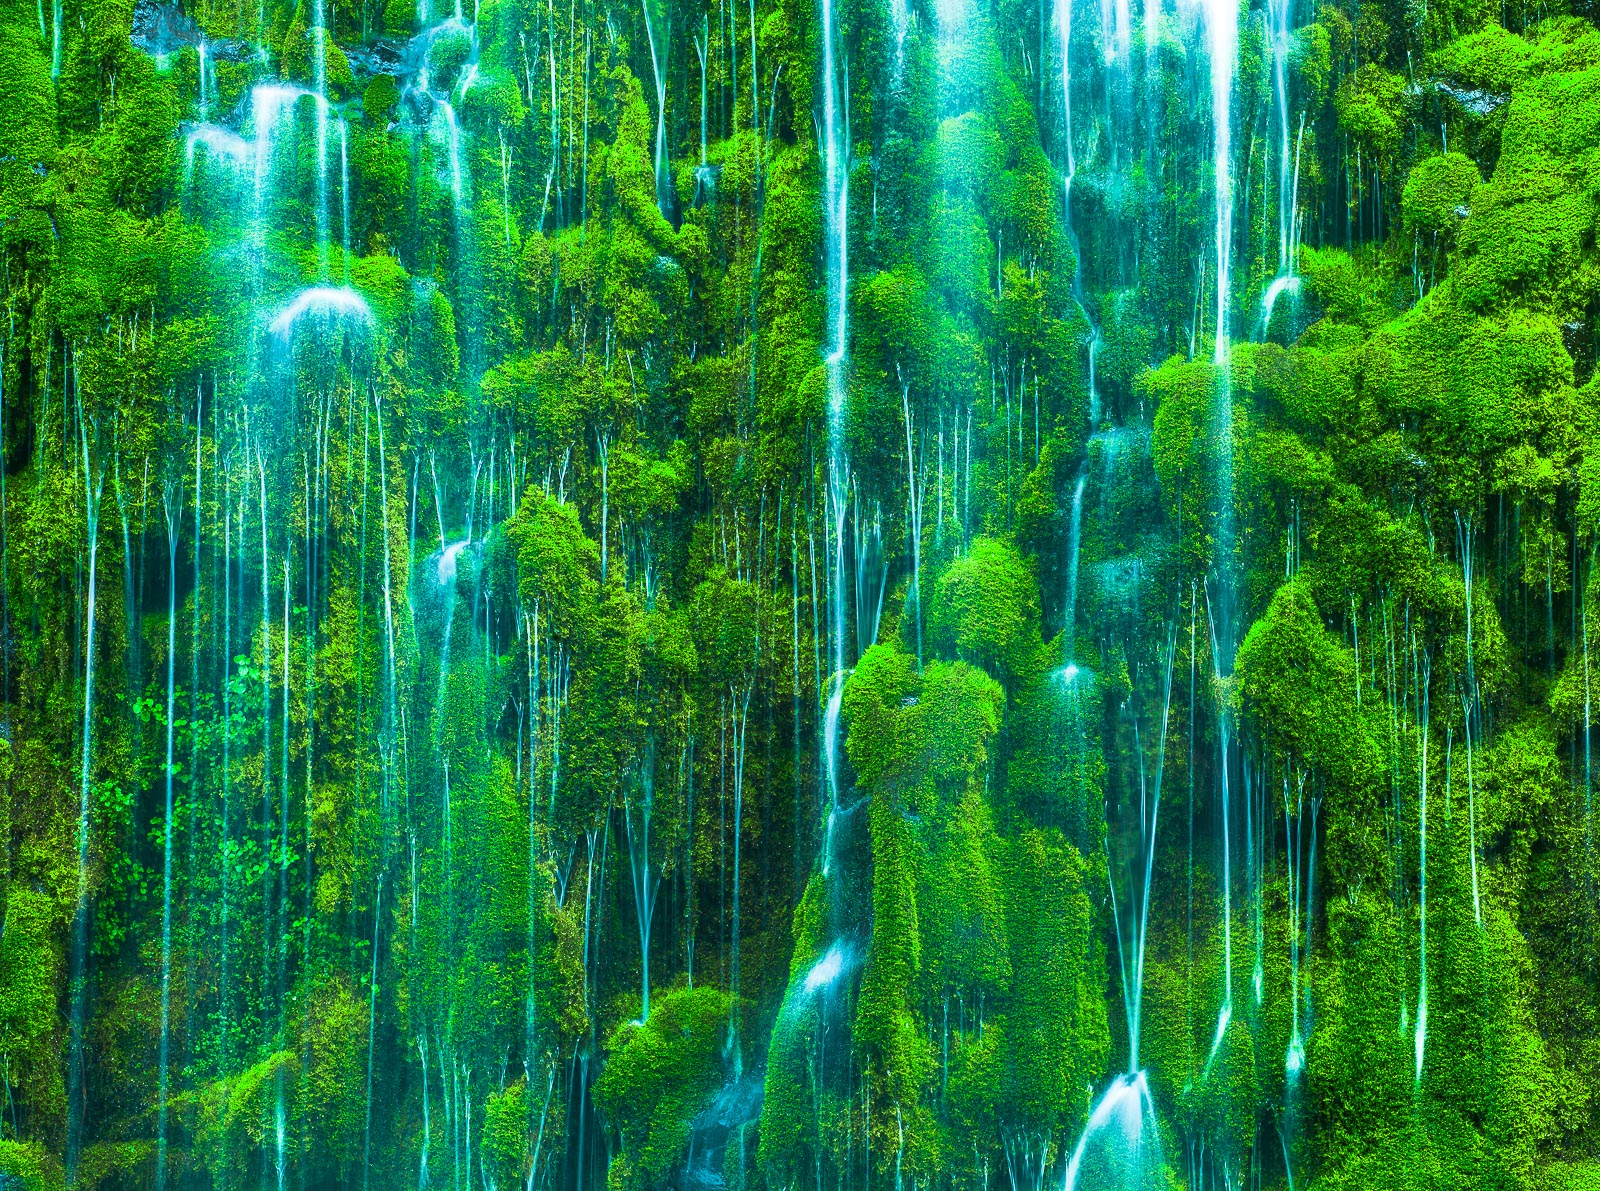 Rivulets in Moss,California,Close-up,Waterfall,horizontal,Rain,Train, Track,, photo